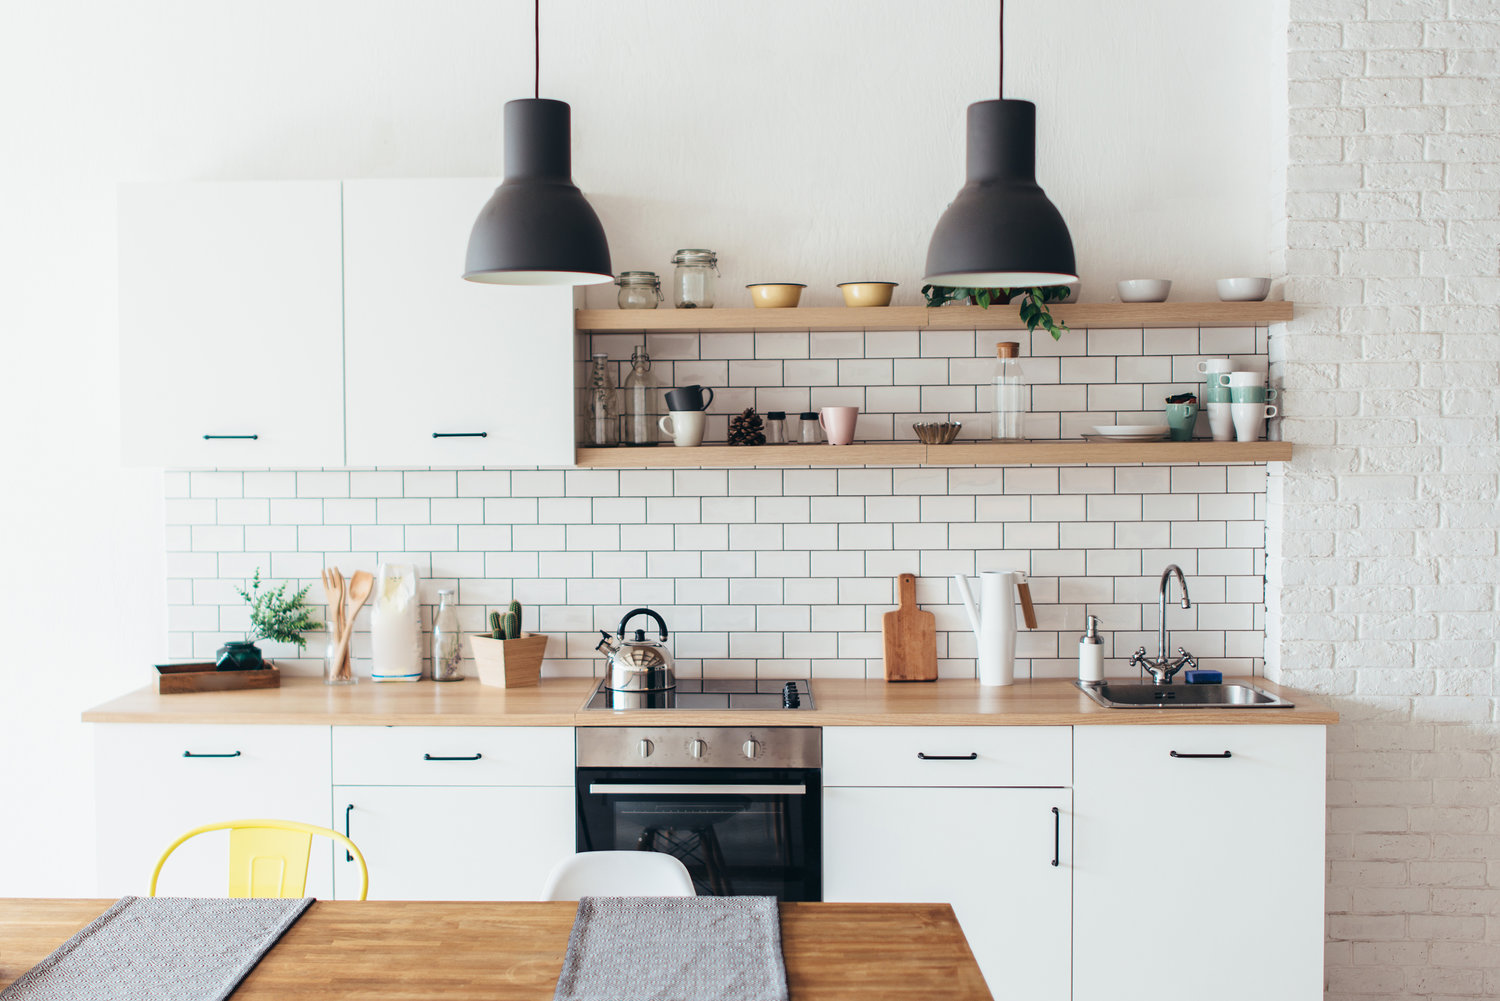 How To Decorate A Kitchen With Black